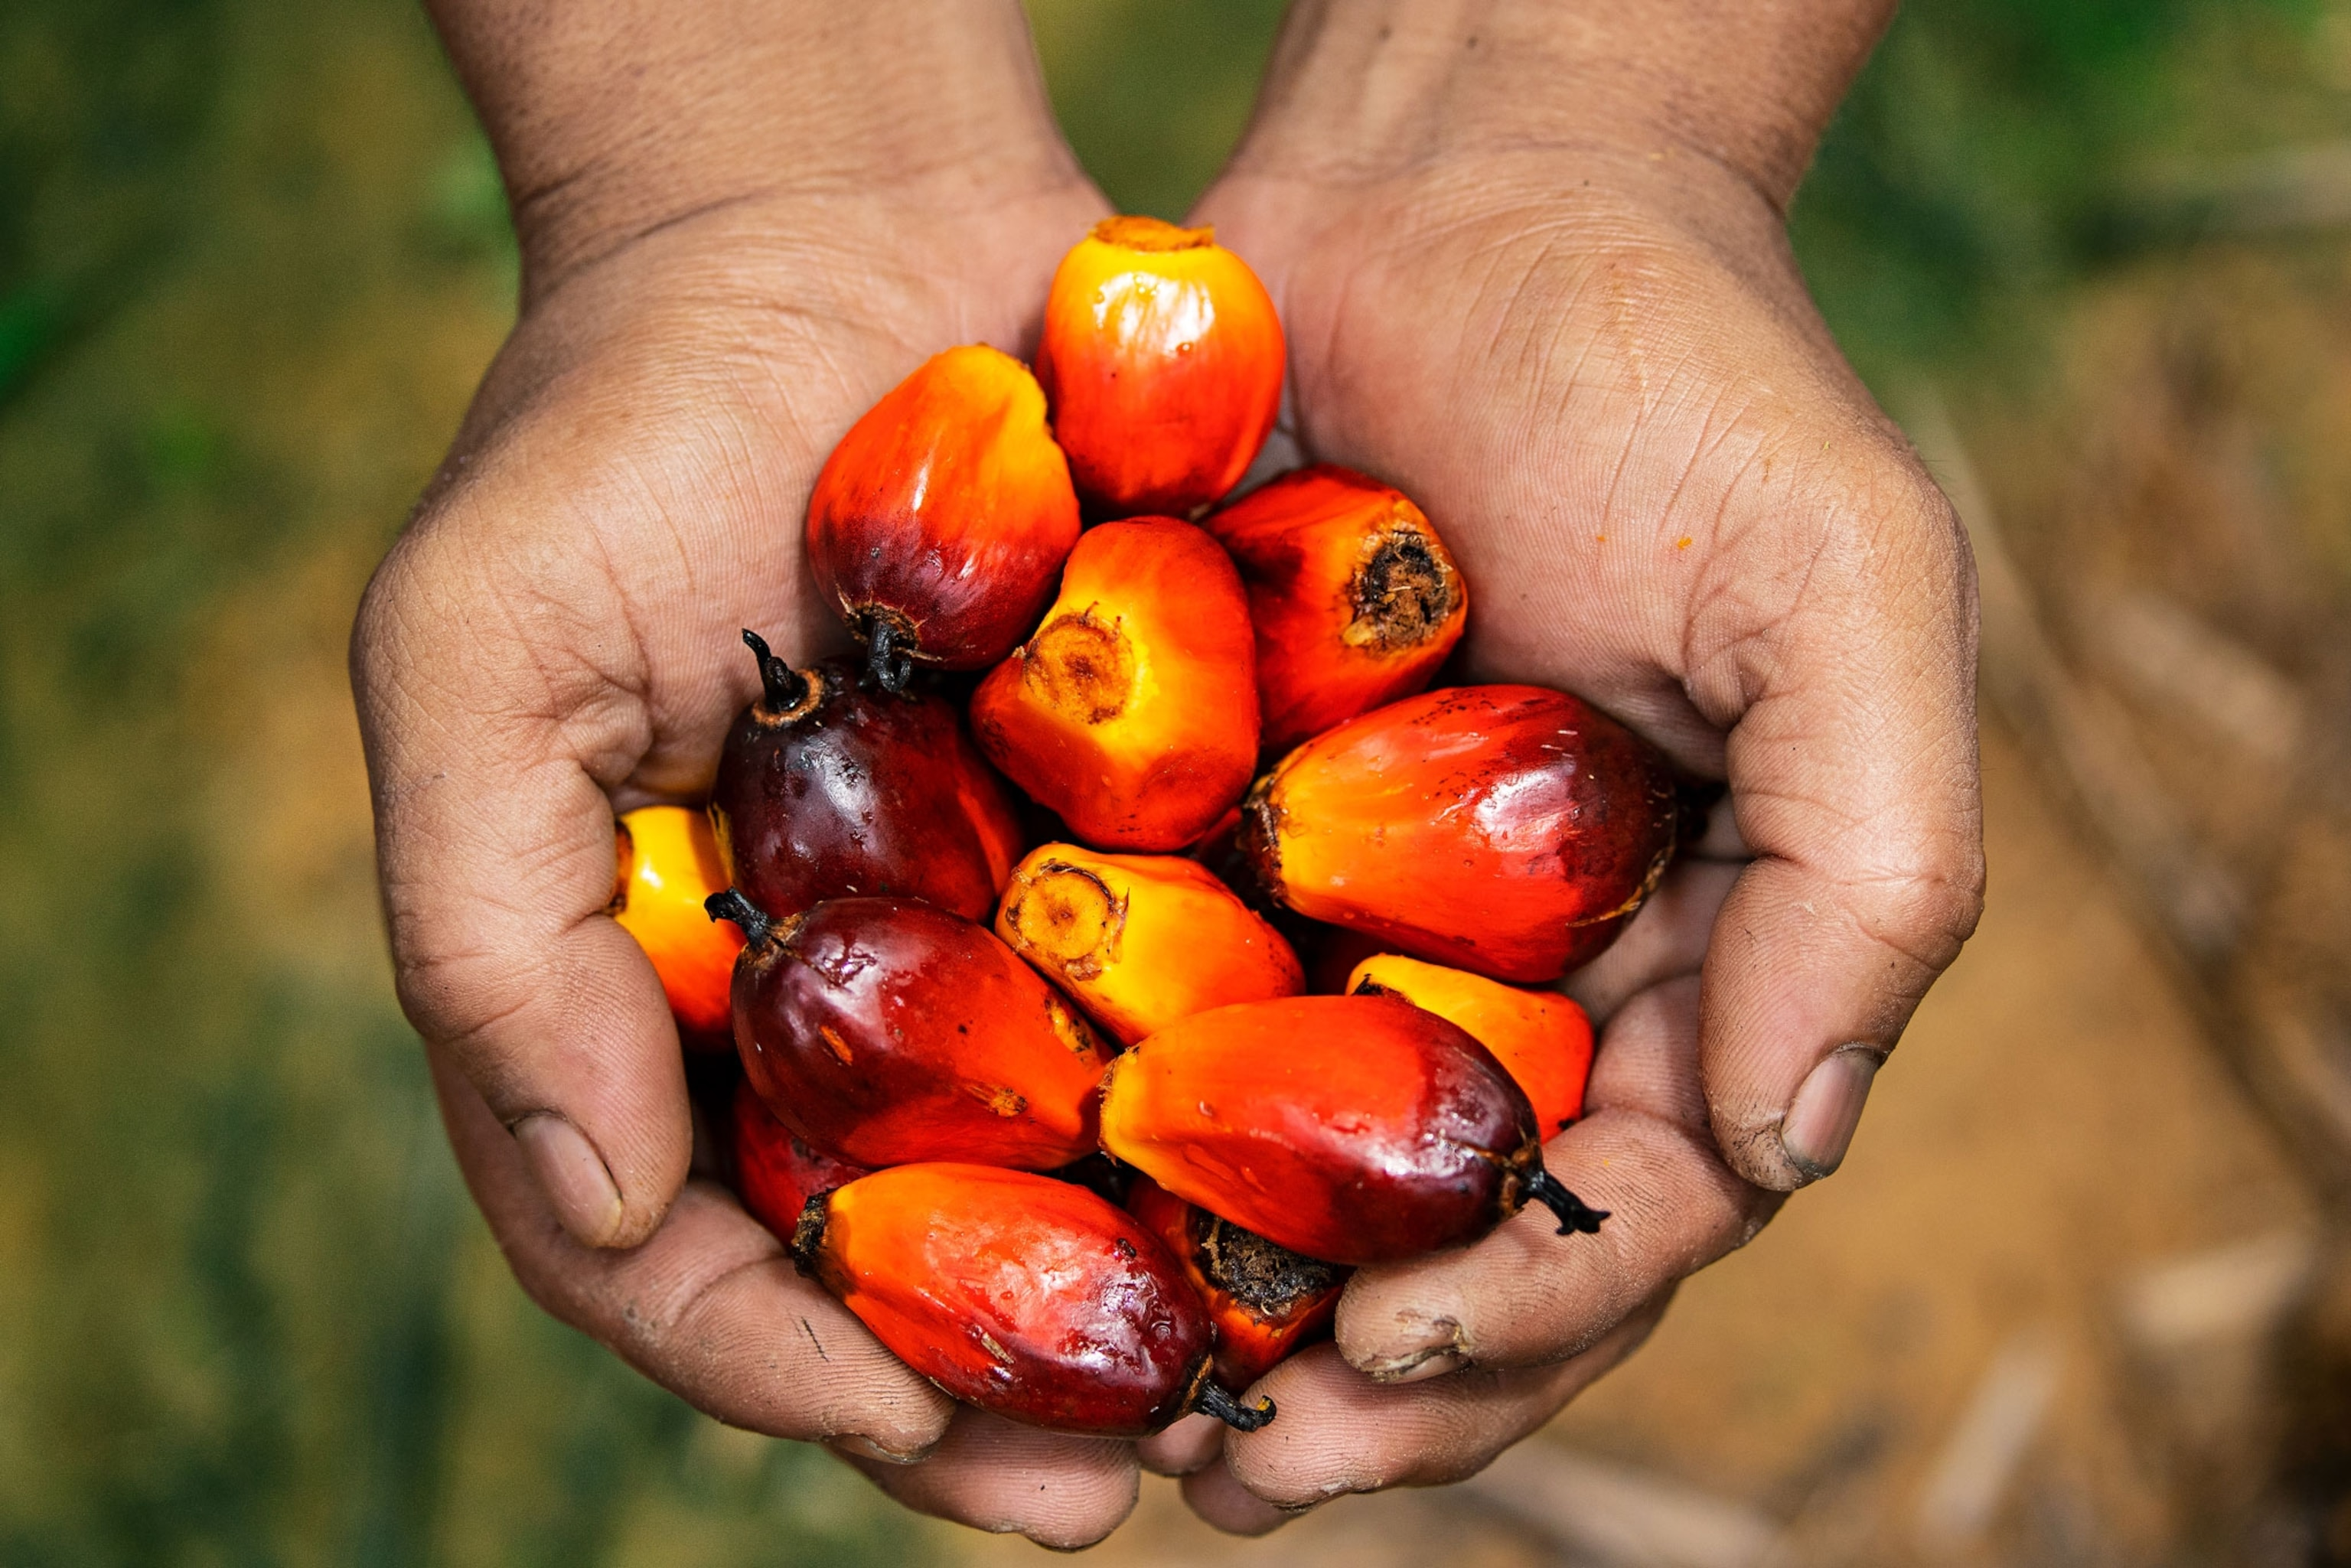 Palm oil is destroying rainforests. But try going a day without it.